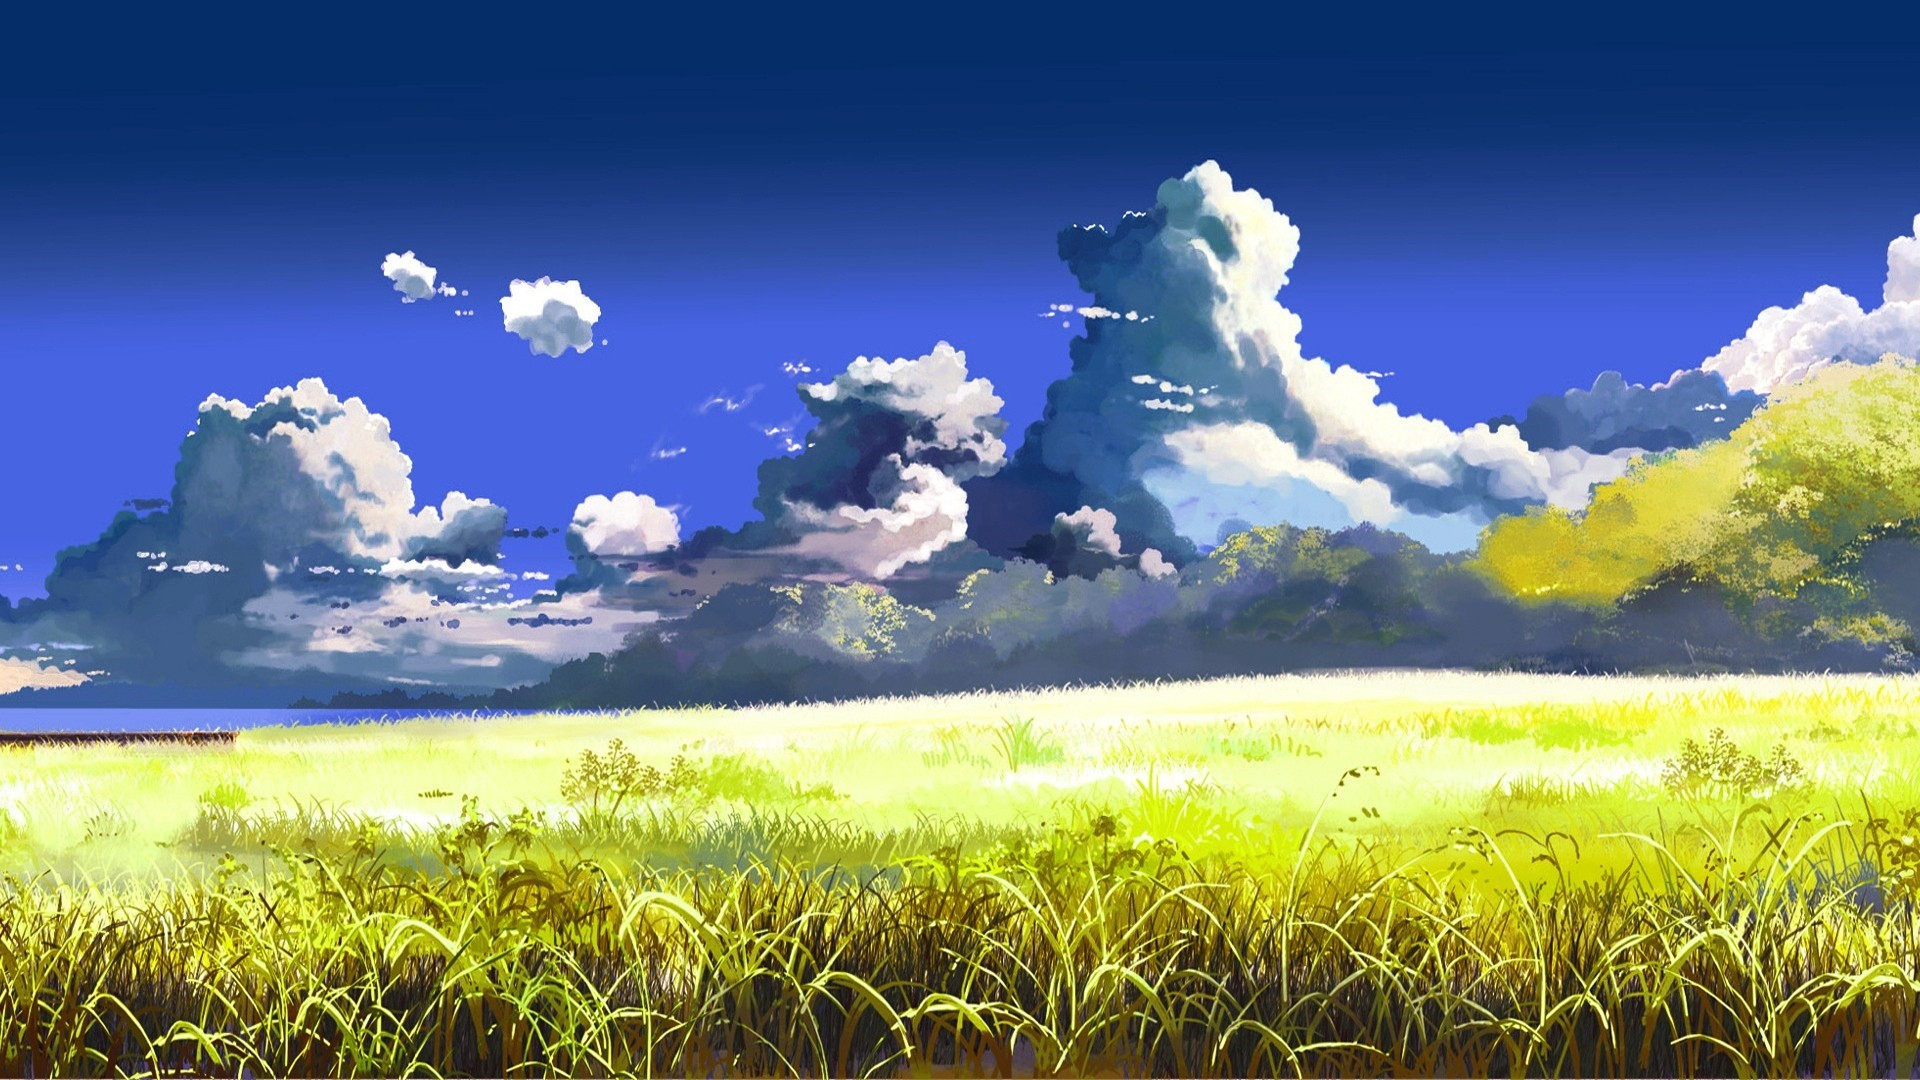 Anime Clouds Free Wallpaper